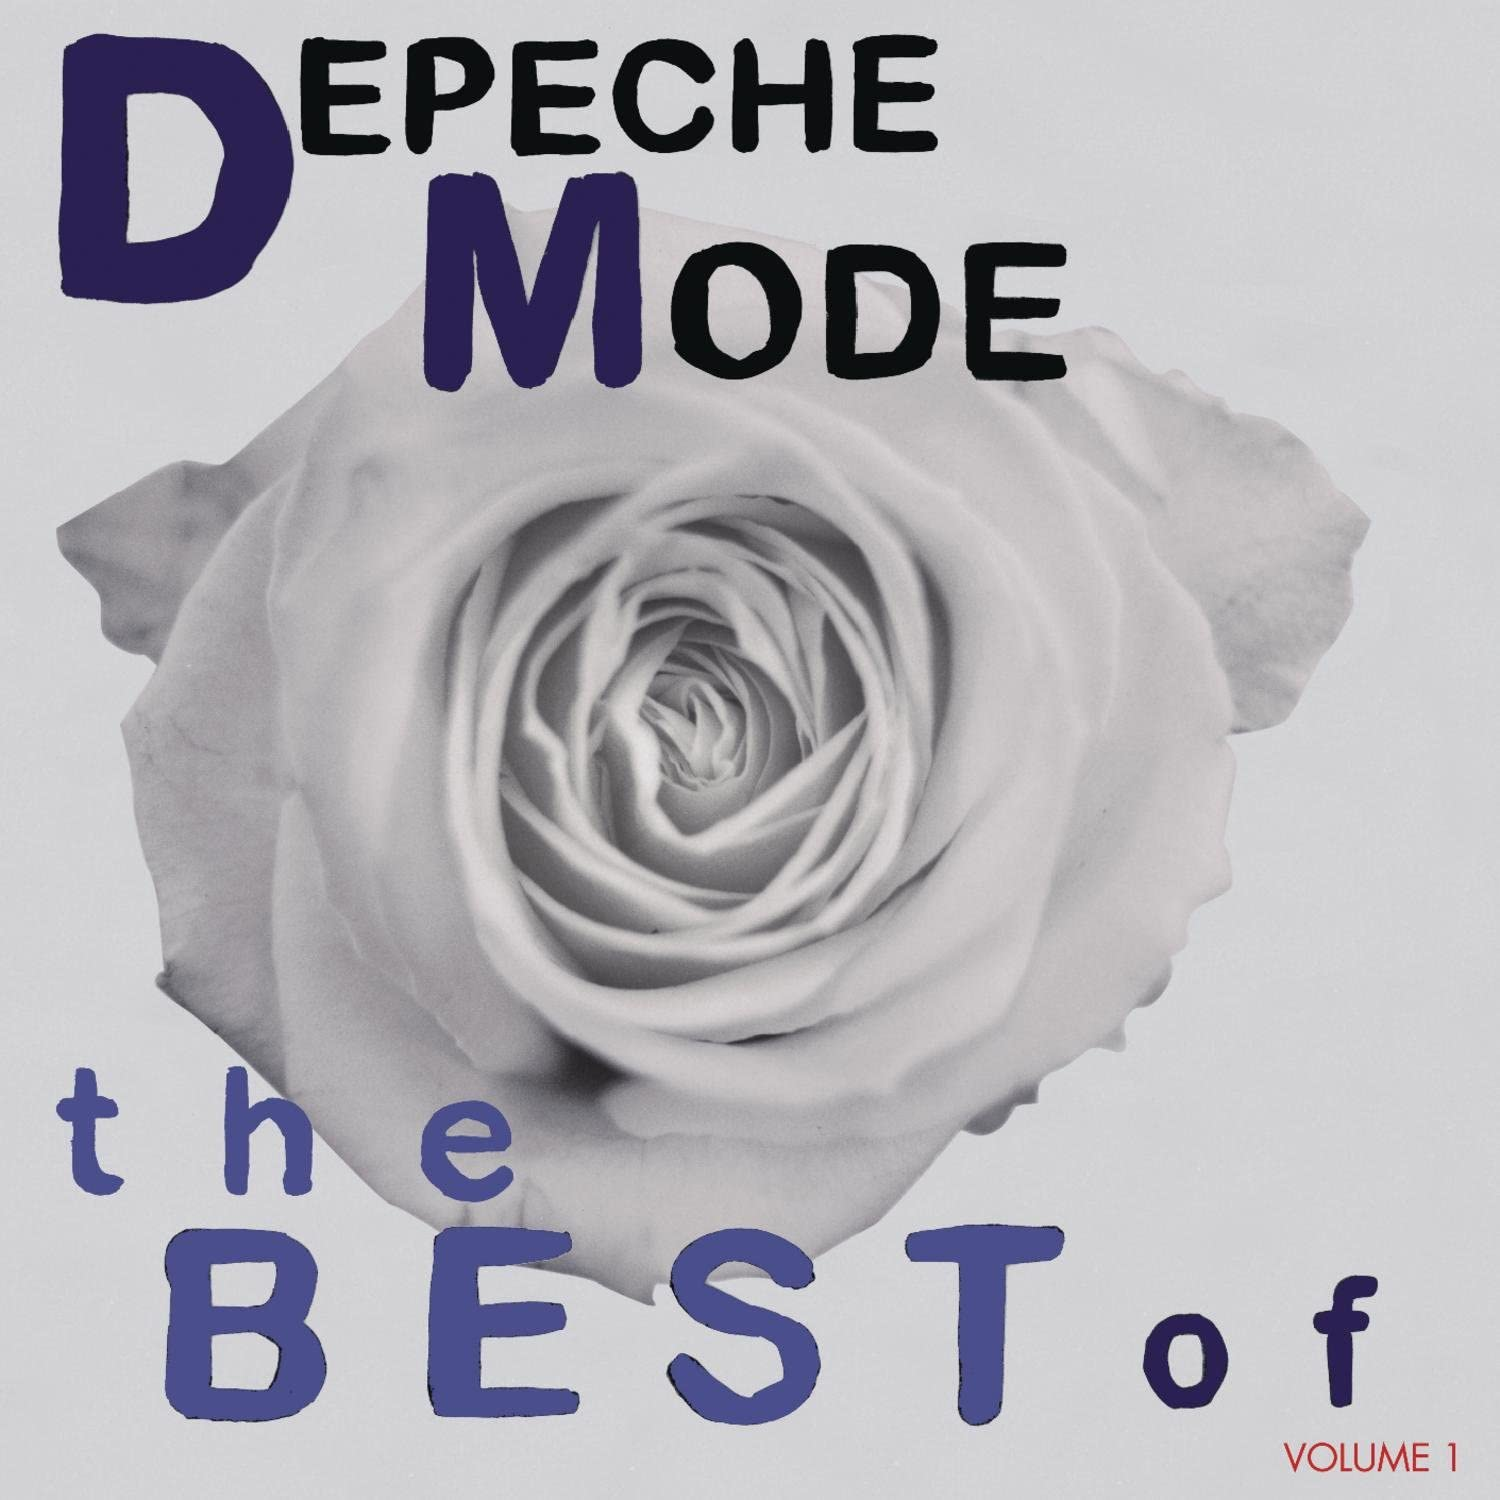 The Best of Depeche Mode Vol 1